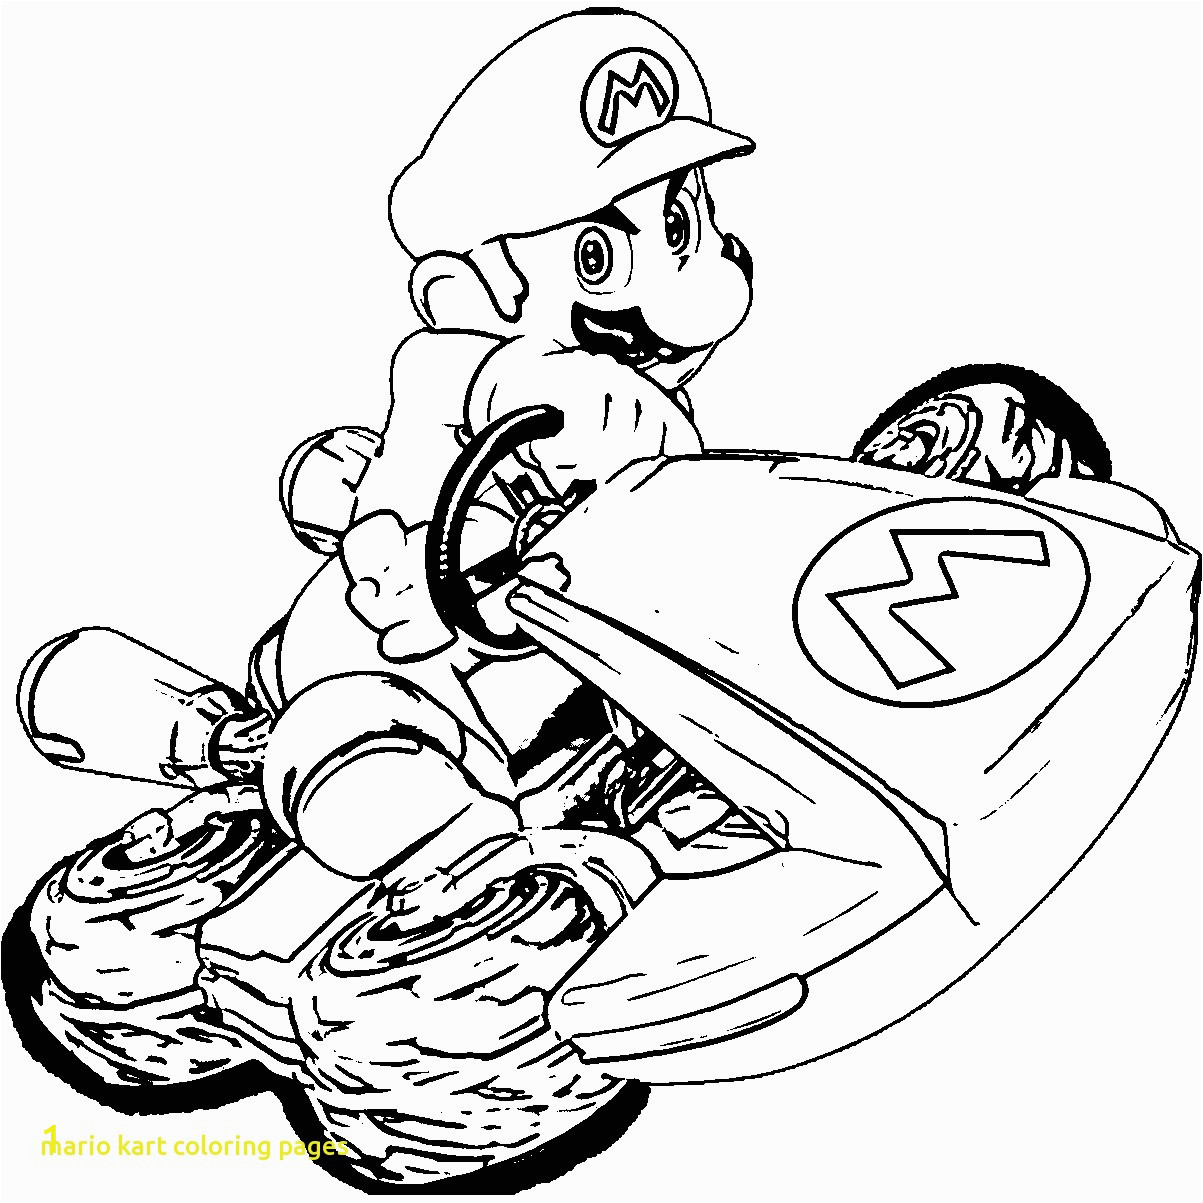 d33c6dbaab87abcbfa4a c2a1a2 28 collection of super mario kart coloring pages high quality 1203 1203